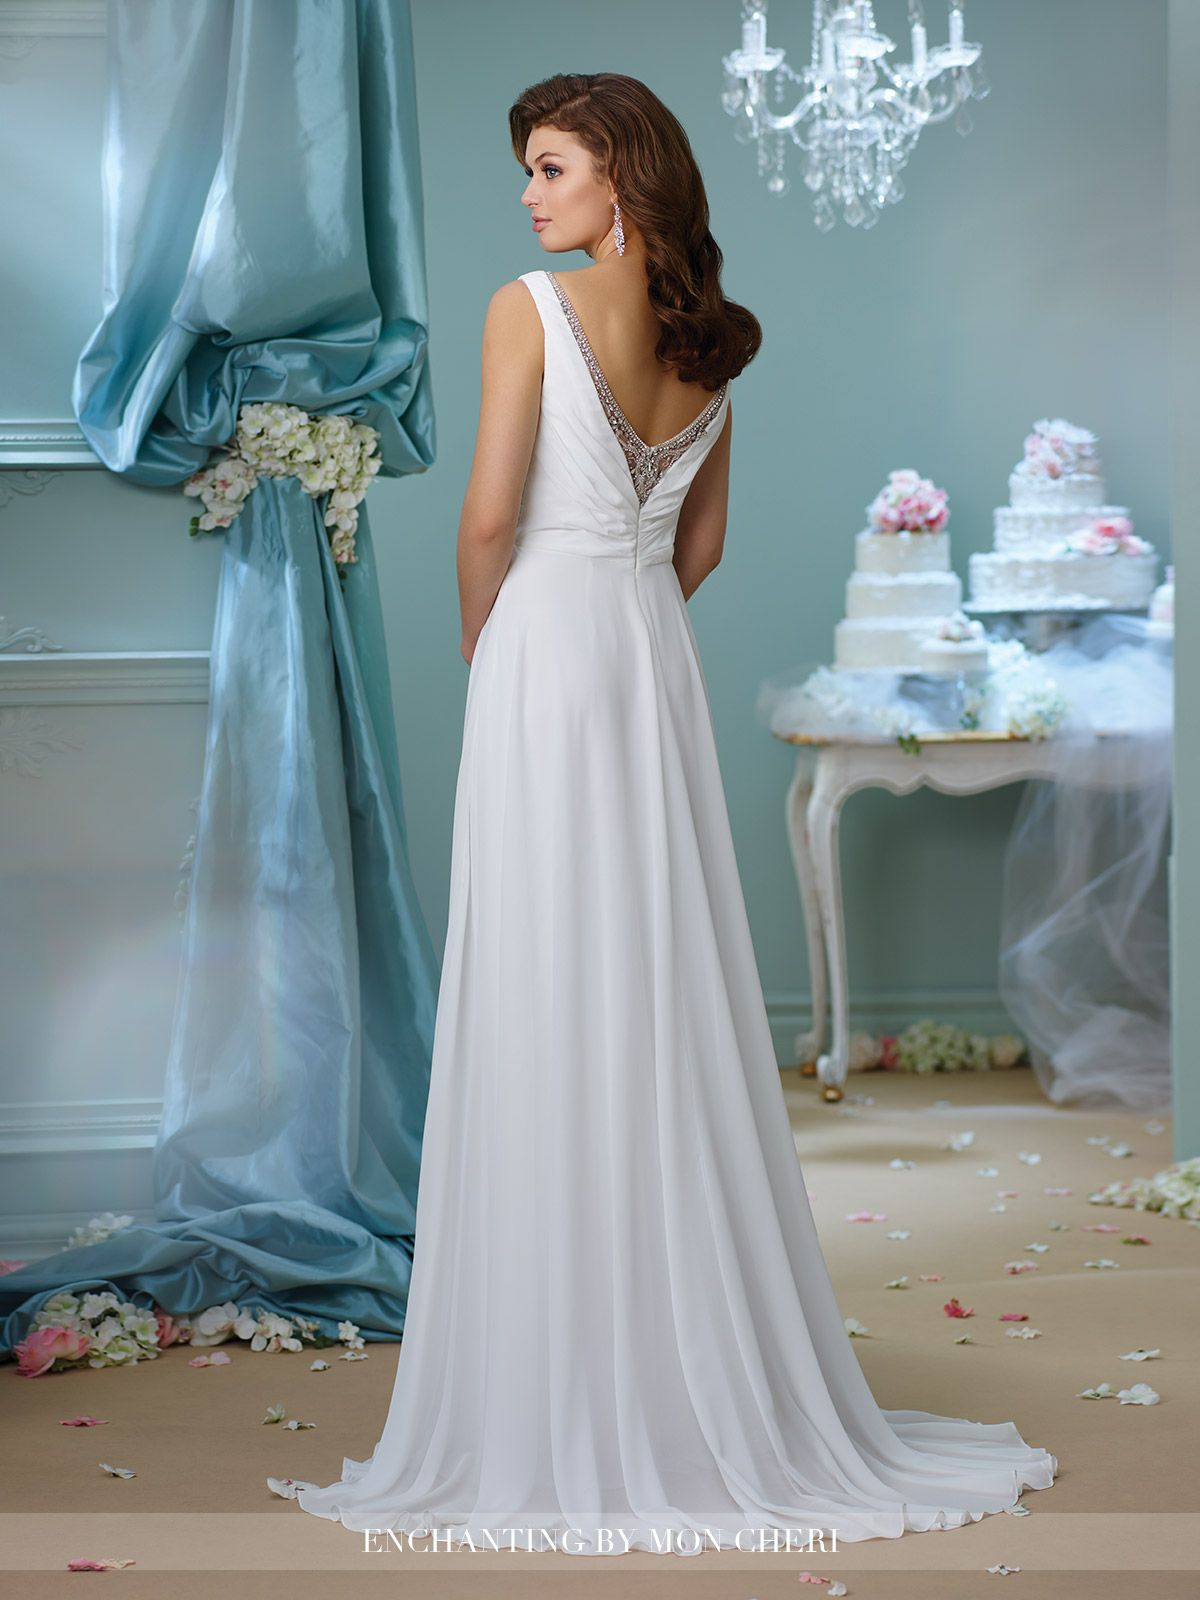 Illusion V-Neckline Wedding Dress- 216166- Enchanting by Mon Cheri ...